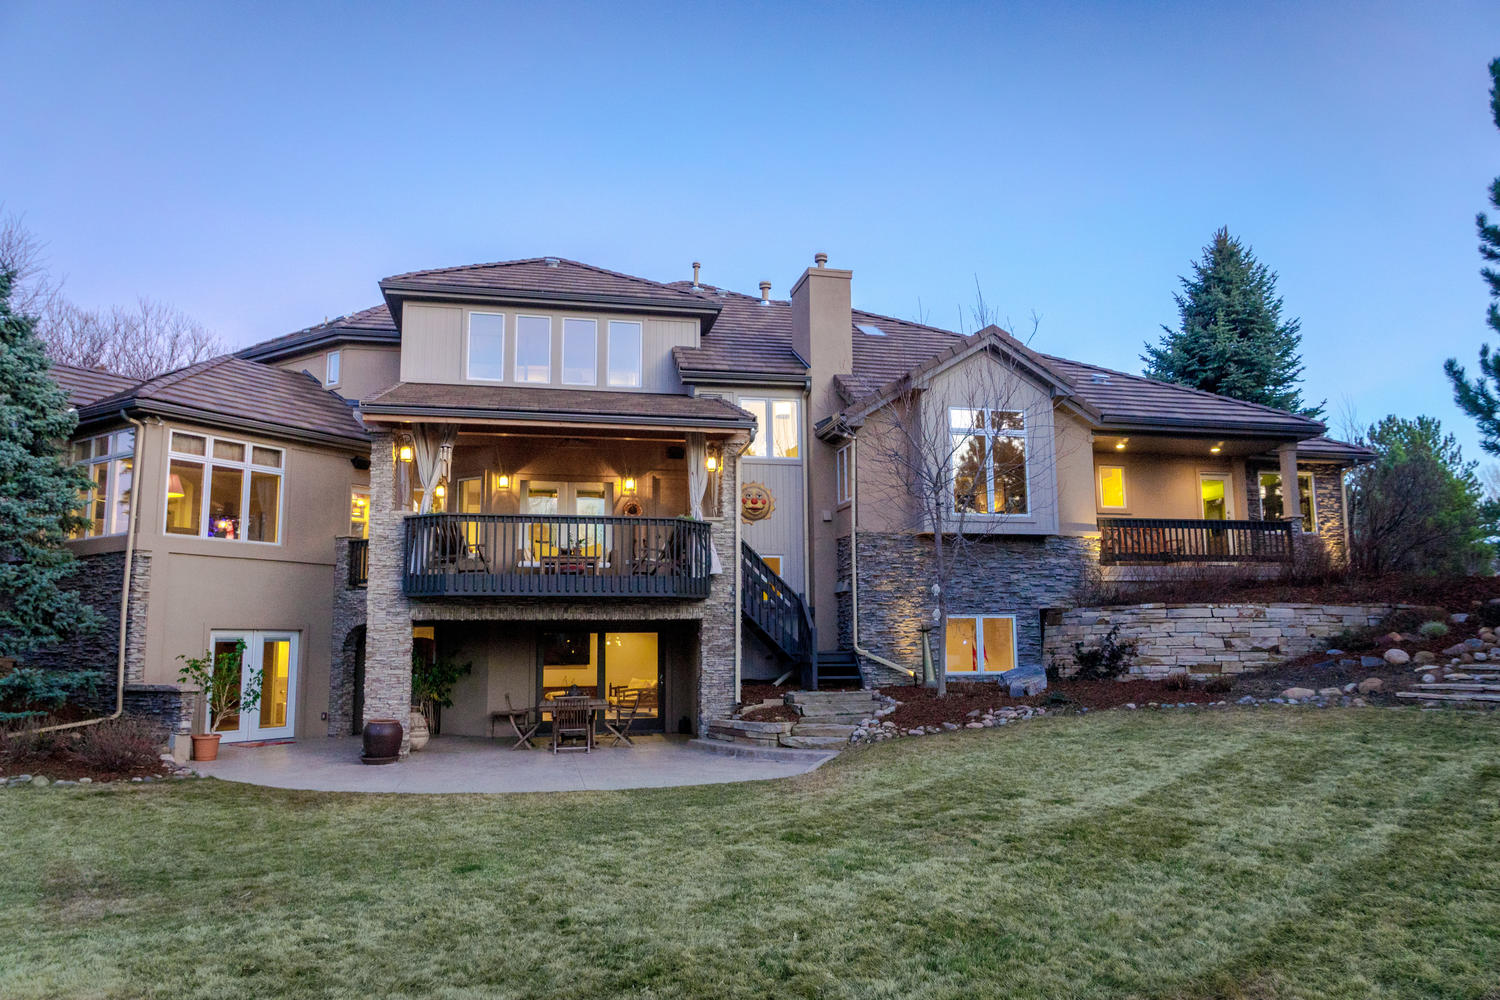 Single Family Home for Active at Custom-Built Home on a Quiet and Peaceful Cul-De-Sac 5501 Hawthorn Circle Greenwood Village, Colorado 80121 United States